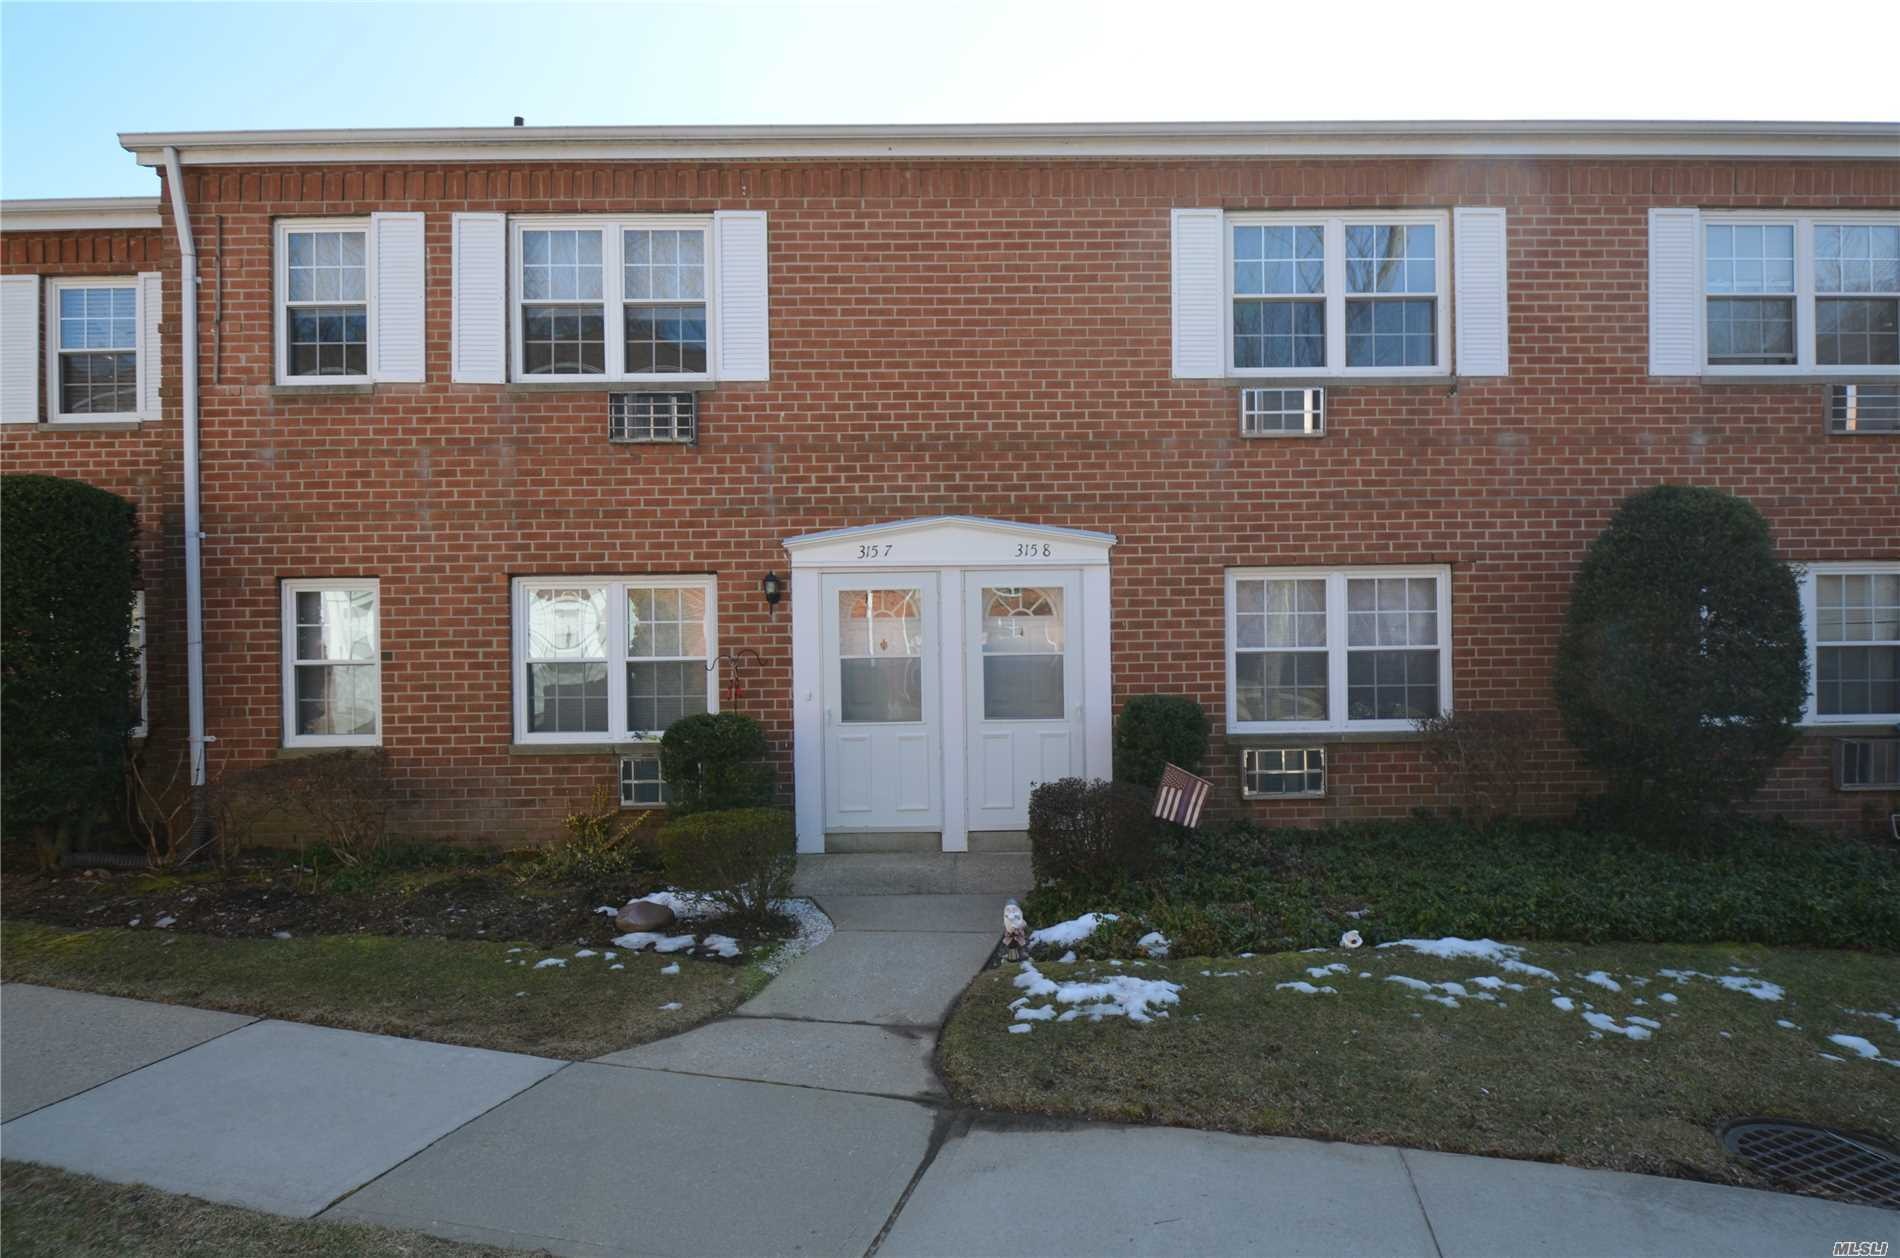 Spacious 1 Bedroom Co-Op in Great Location offer Living room, Dining Area, Brand New tiled Bathroom, Large Bedroom with Double closets, Eff Kitchen with gas cooking, near shops and LIRR, assigned parking space plus guest parking, Laundry Room, Additional Storage. Pool coming soon.